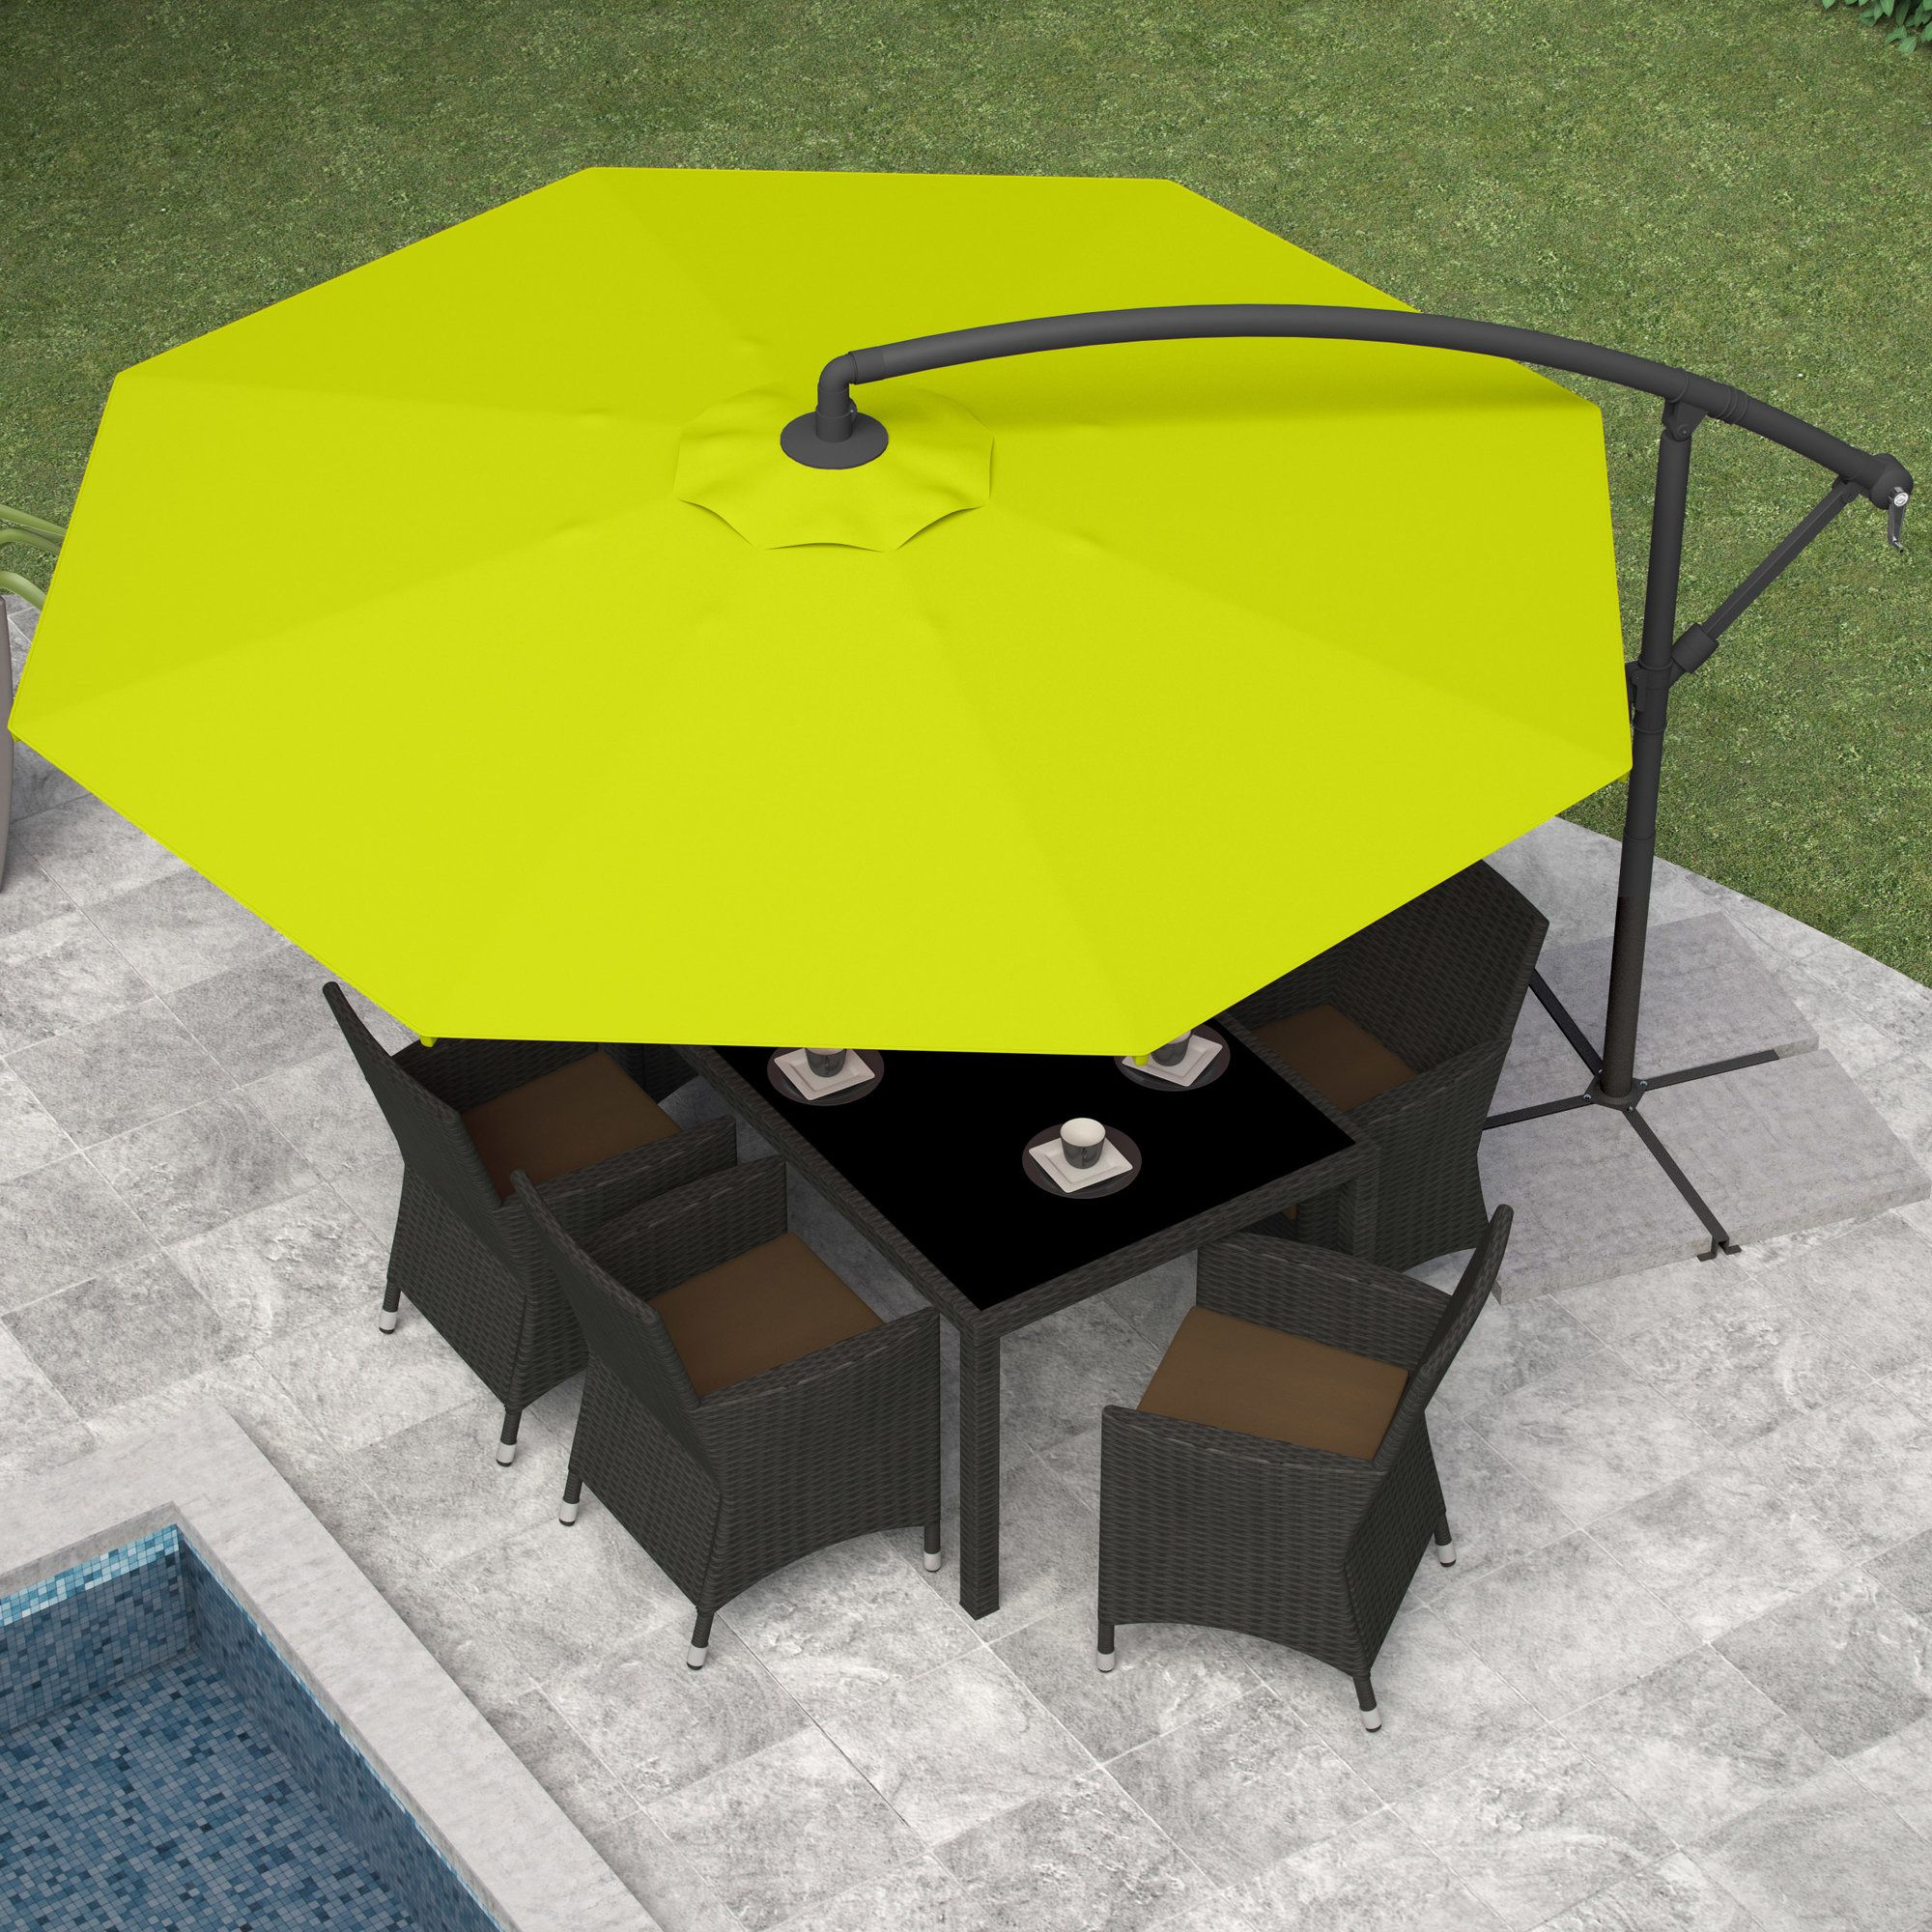 Offset Patio Umbrella (View 4 of 20)